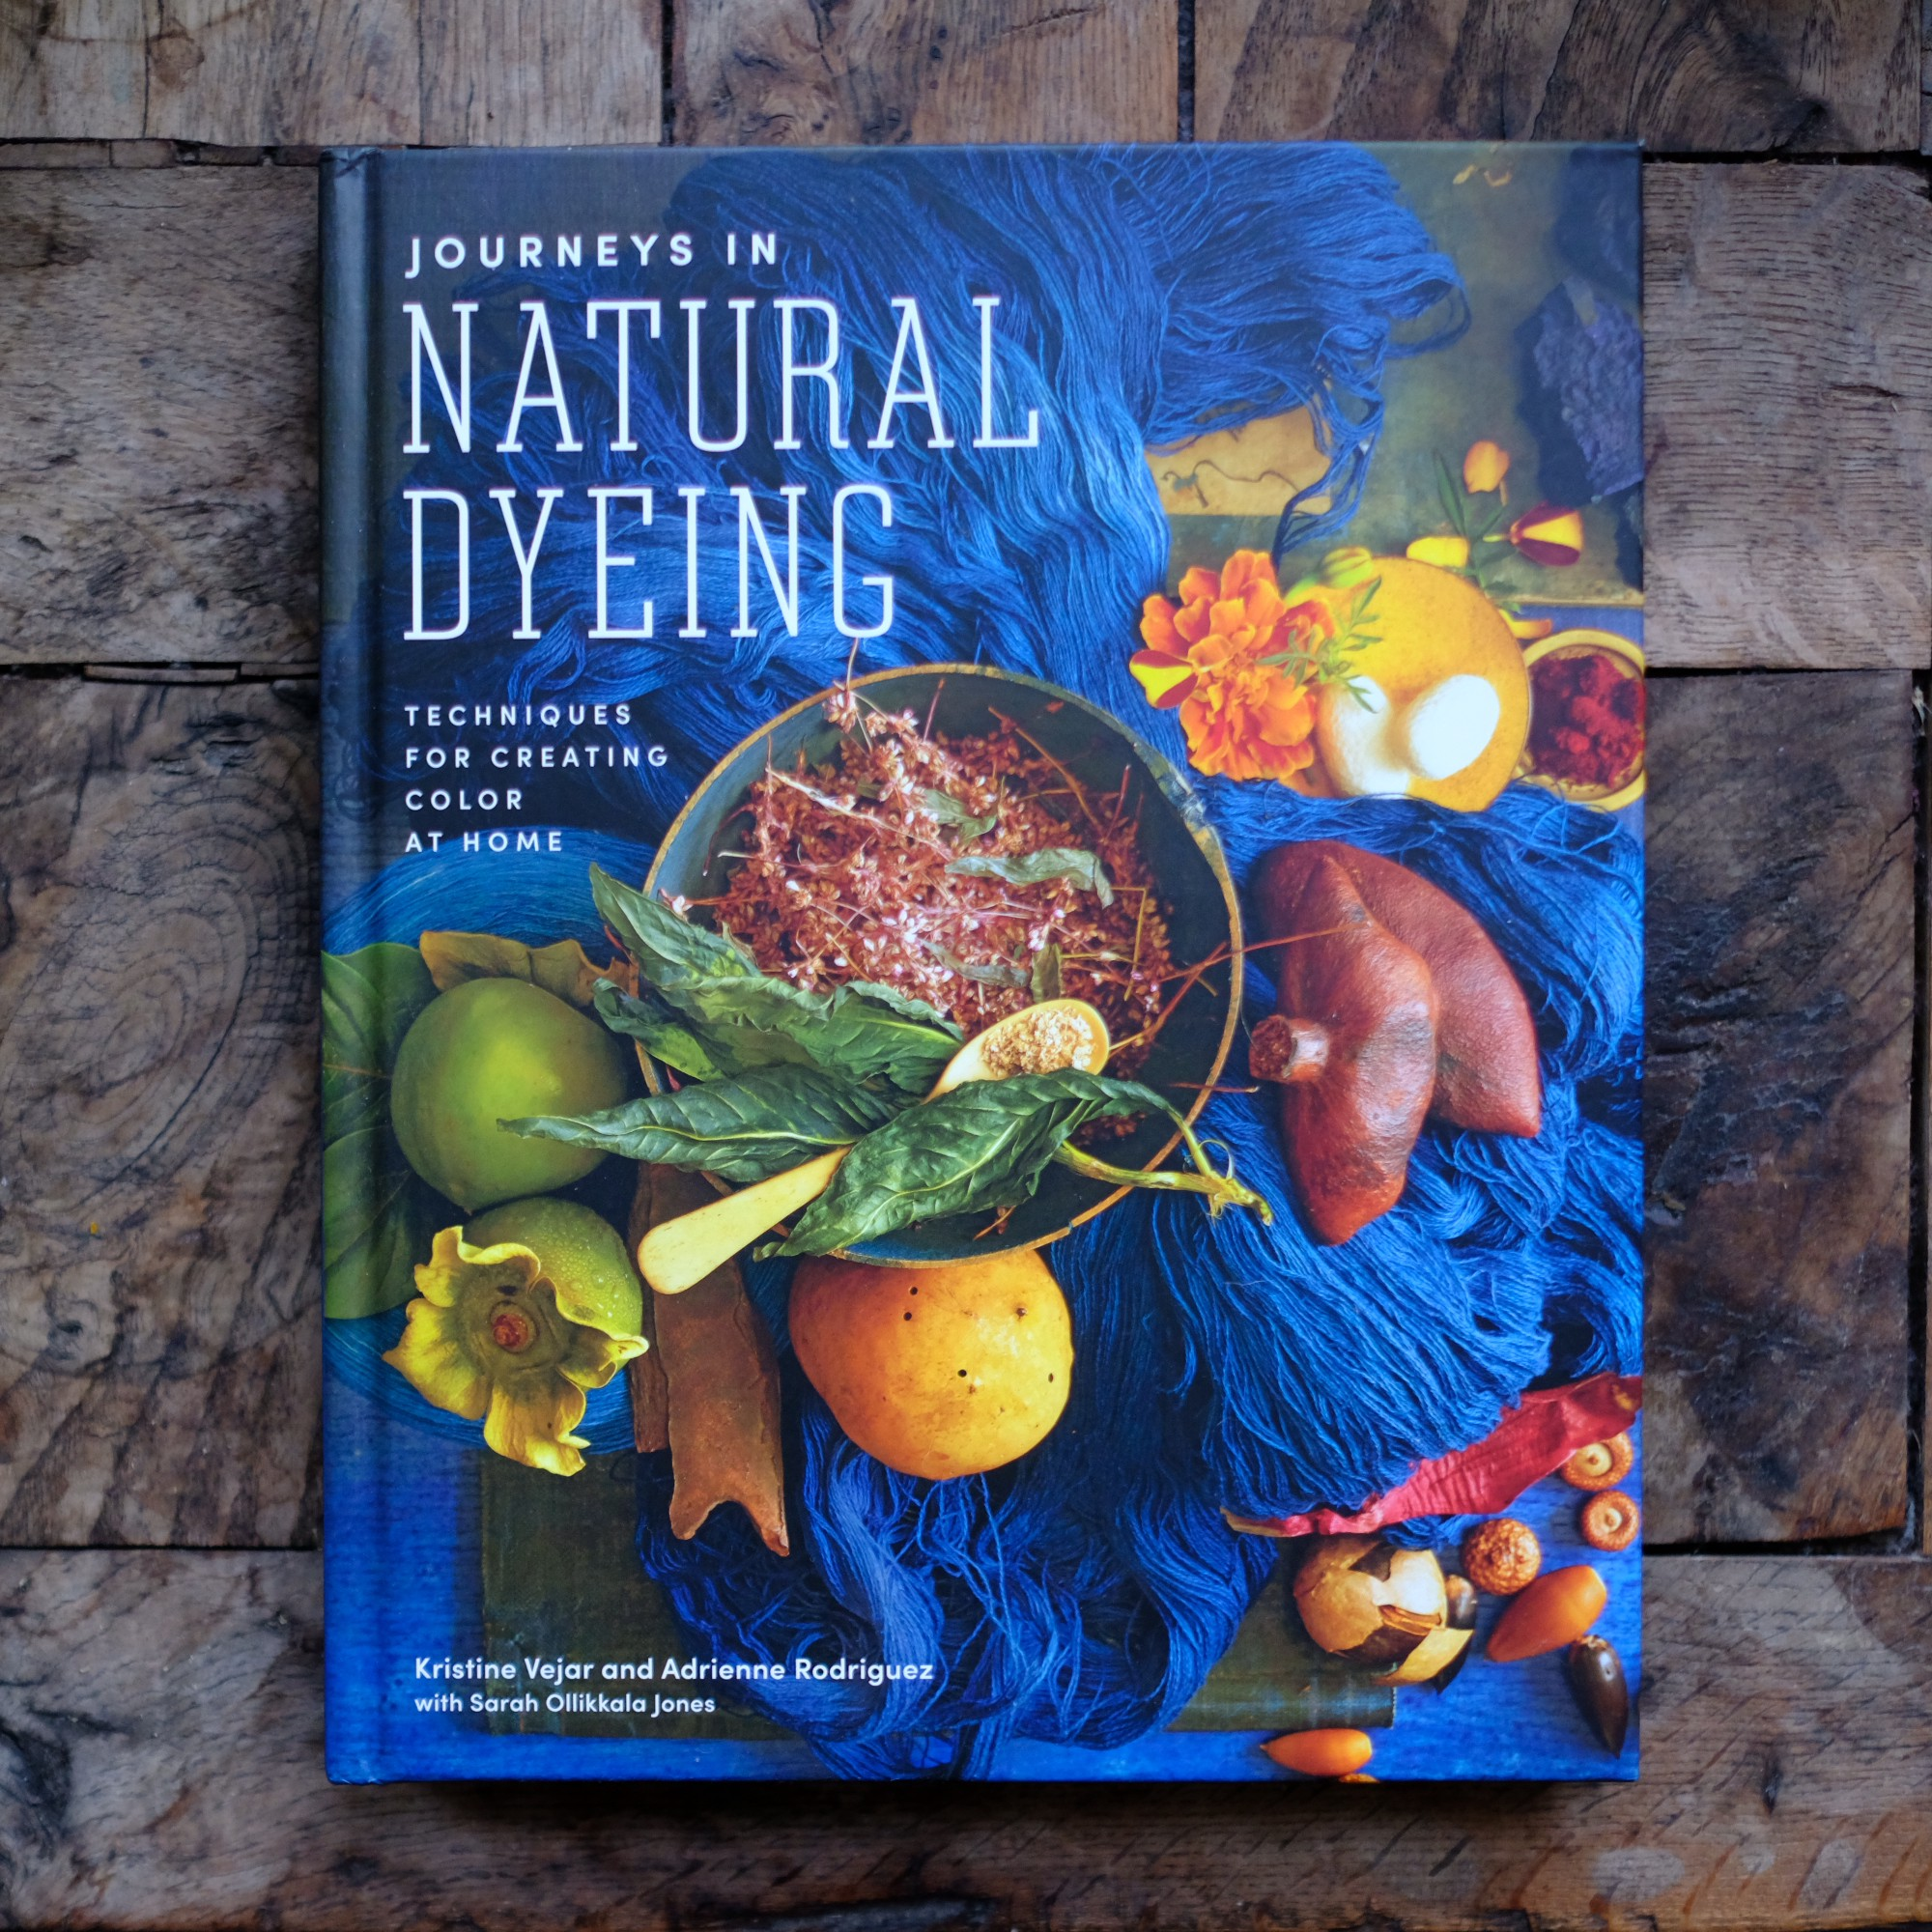 Book cover text: Journeys in Natural Dyeing, techniques for creating color at home.